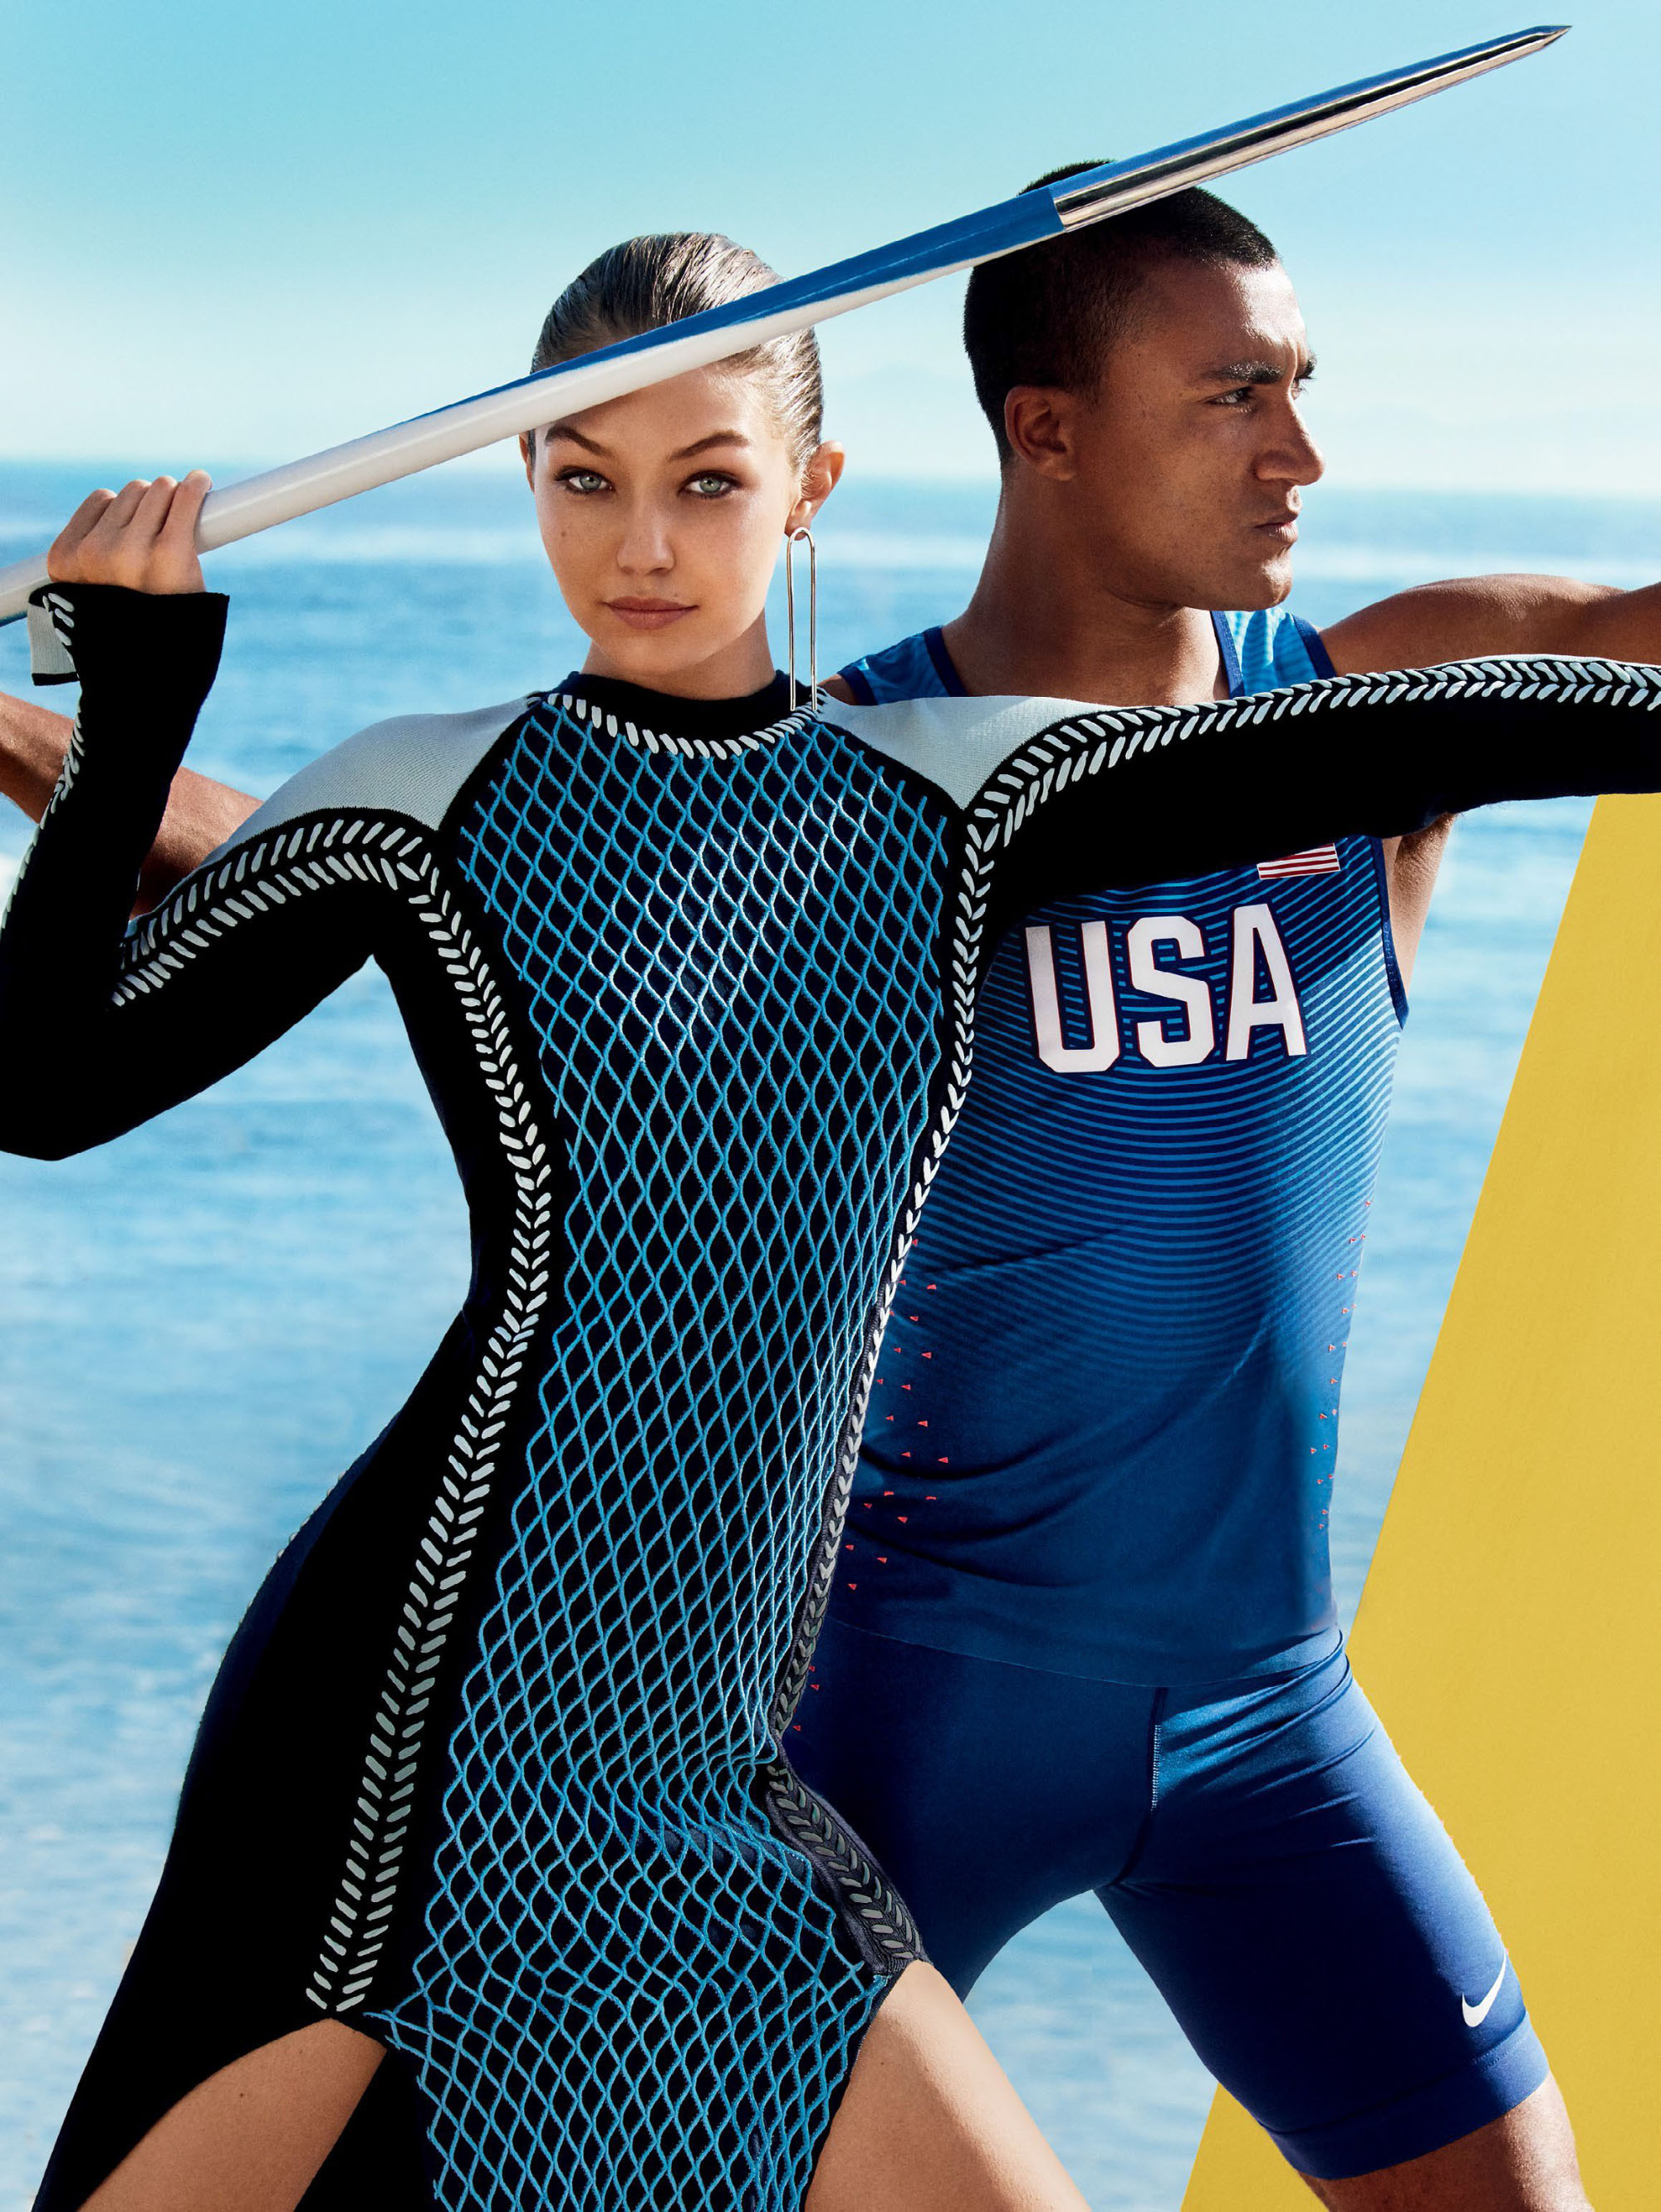 Vogue-US-August-2016-Gigi-Hadid-Ashton-Eaton-by-Mario-Testino-00